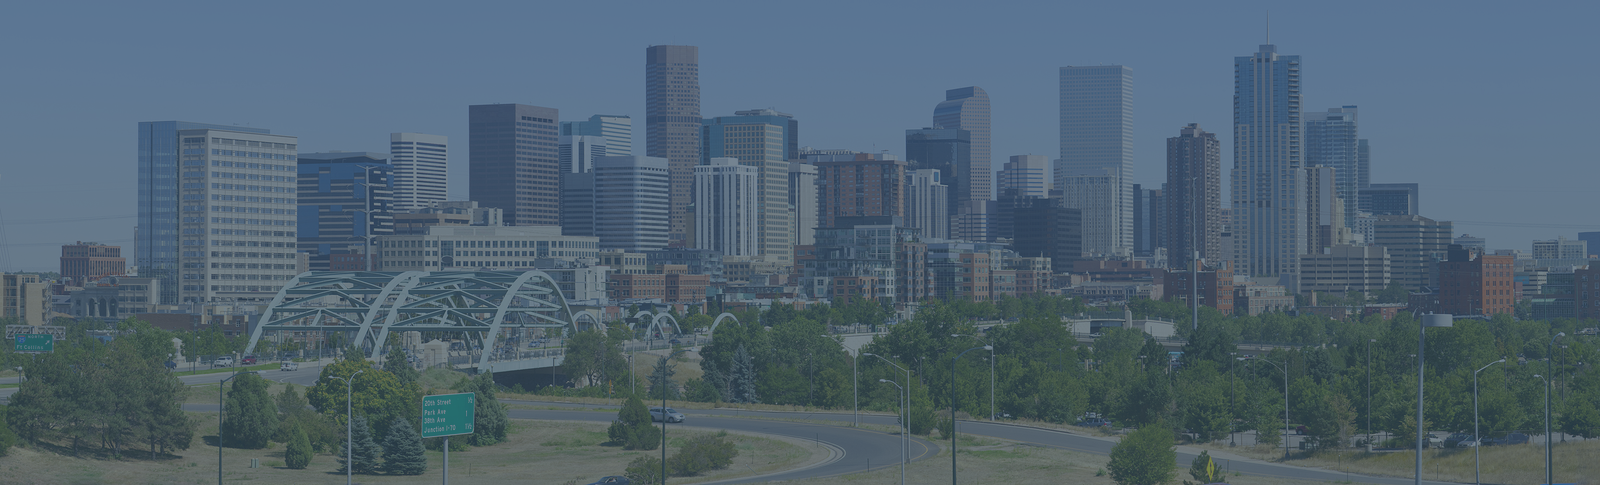 Denver_Skyline_blue